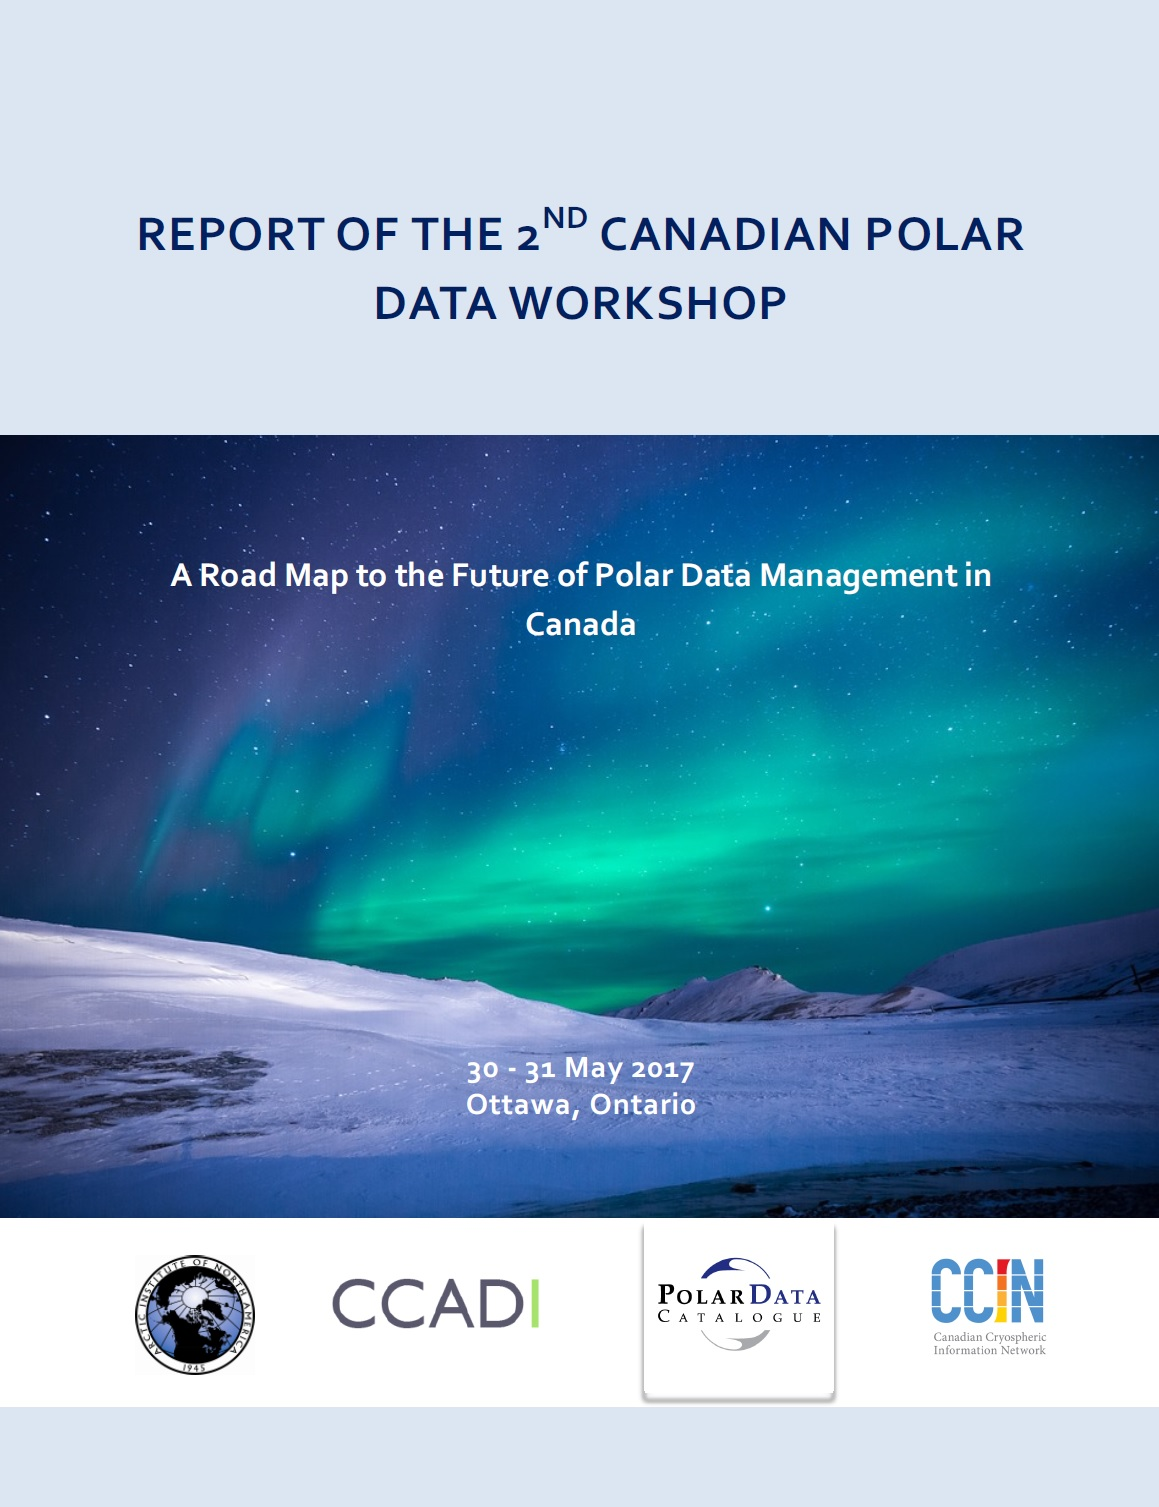 Report of the 2nd Canadian Polar Data Workshop